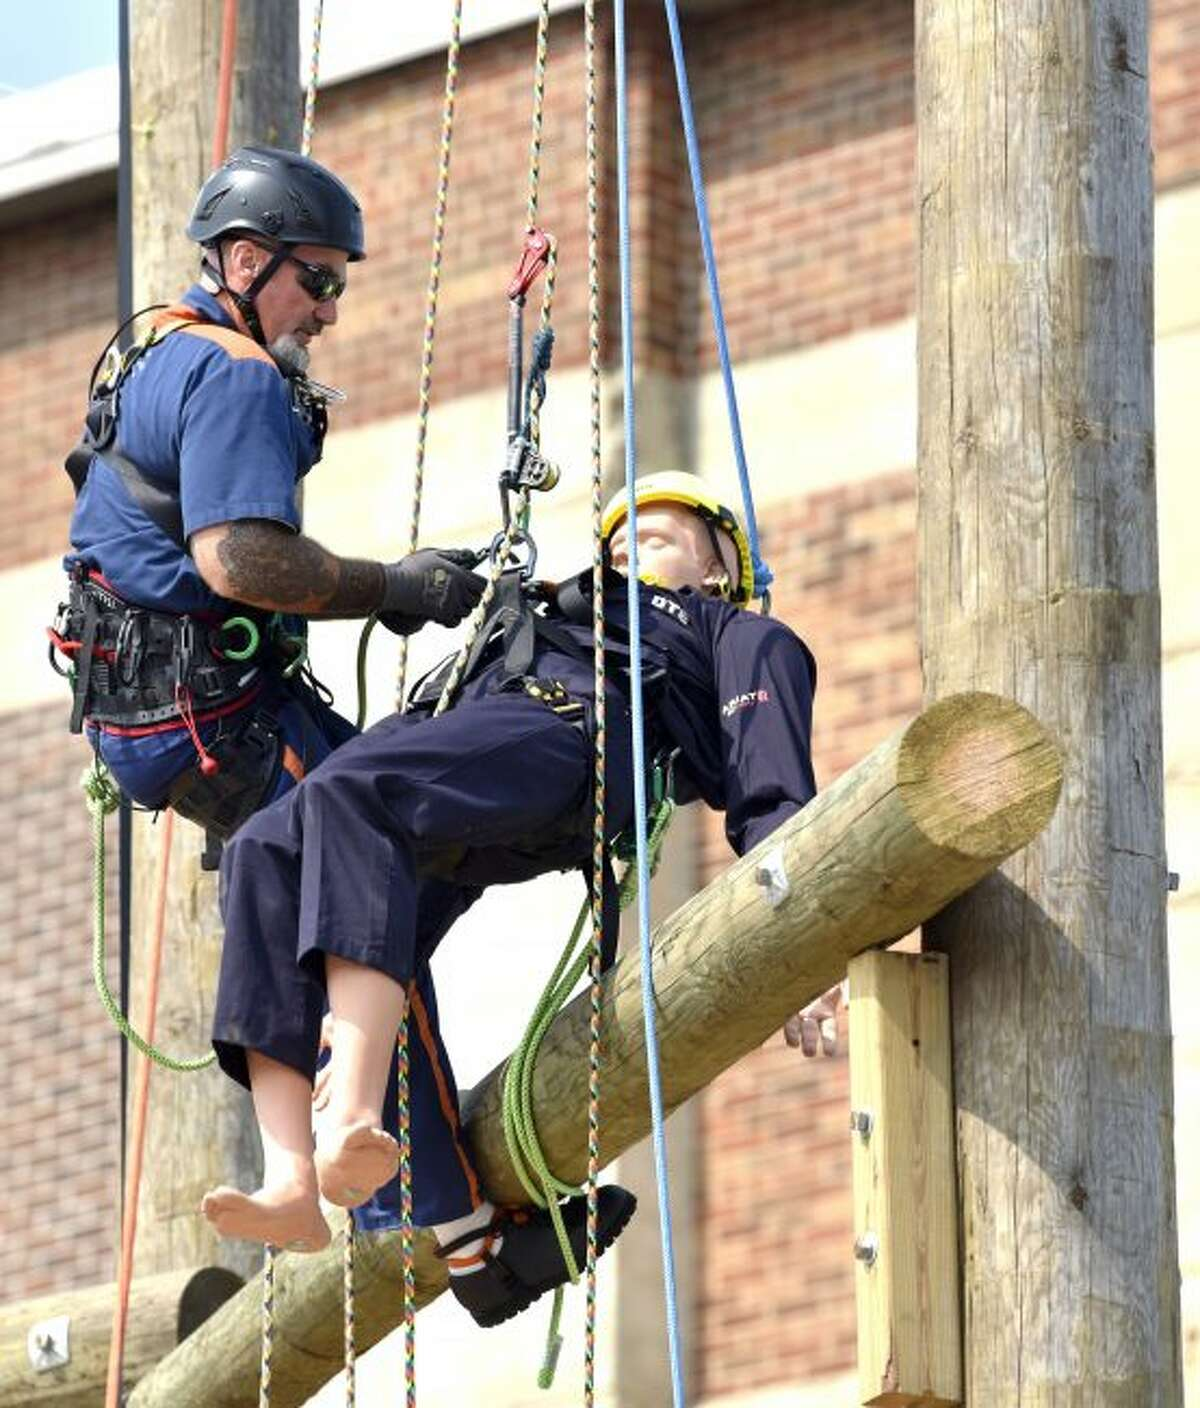 Inmate student Jeffrey Gunnells prepares to rescue this mannequin during a demonstration Tuesday, July 9, 2019, in Jackson, Mich. DTE Energy and Michigan's prison system have launched a tree-trimming program that aims to fill open jobs and find full-time employment for released inmates. State, utility and union officials announced the program Tuesday at the Parnall Correctional Facility in Jackson. (Todd McInturf/Detroit News via AP)